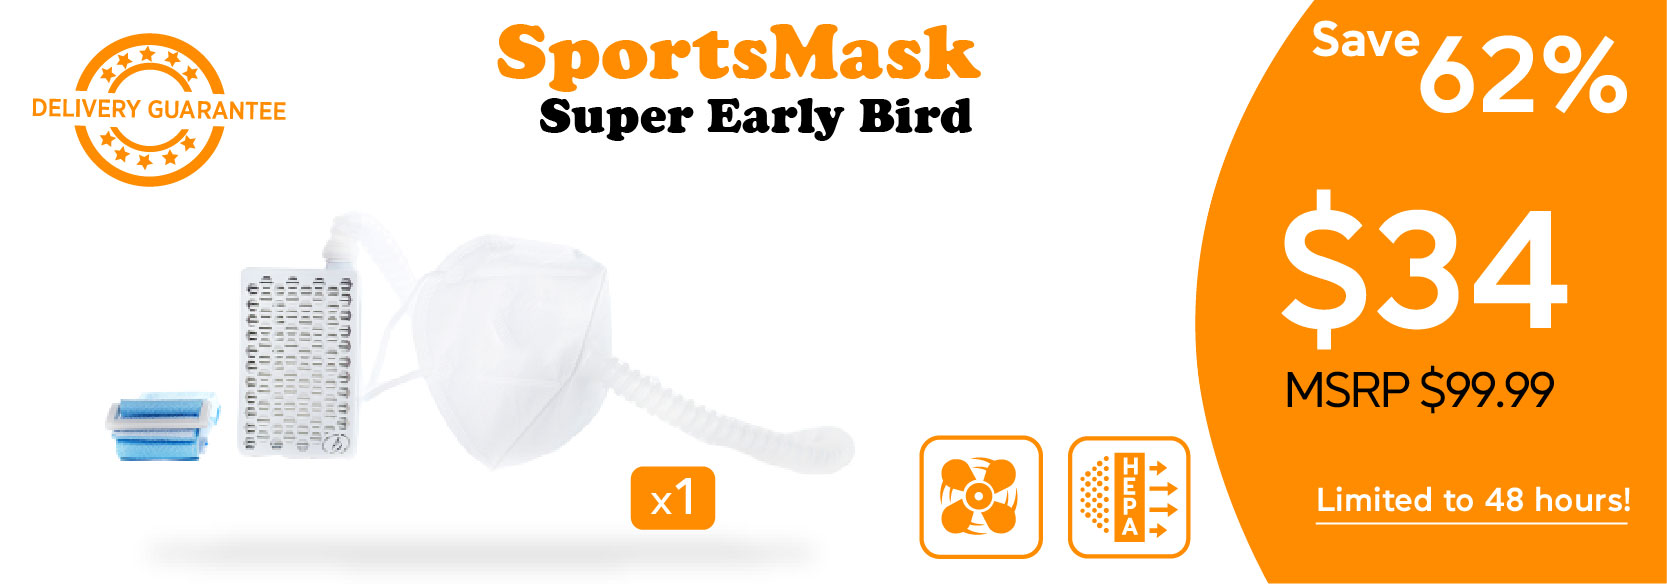 perk posters_Sport Mask Super Early Bird